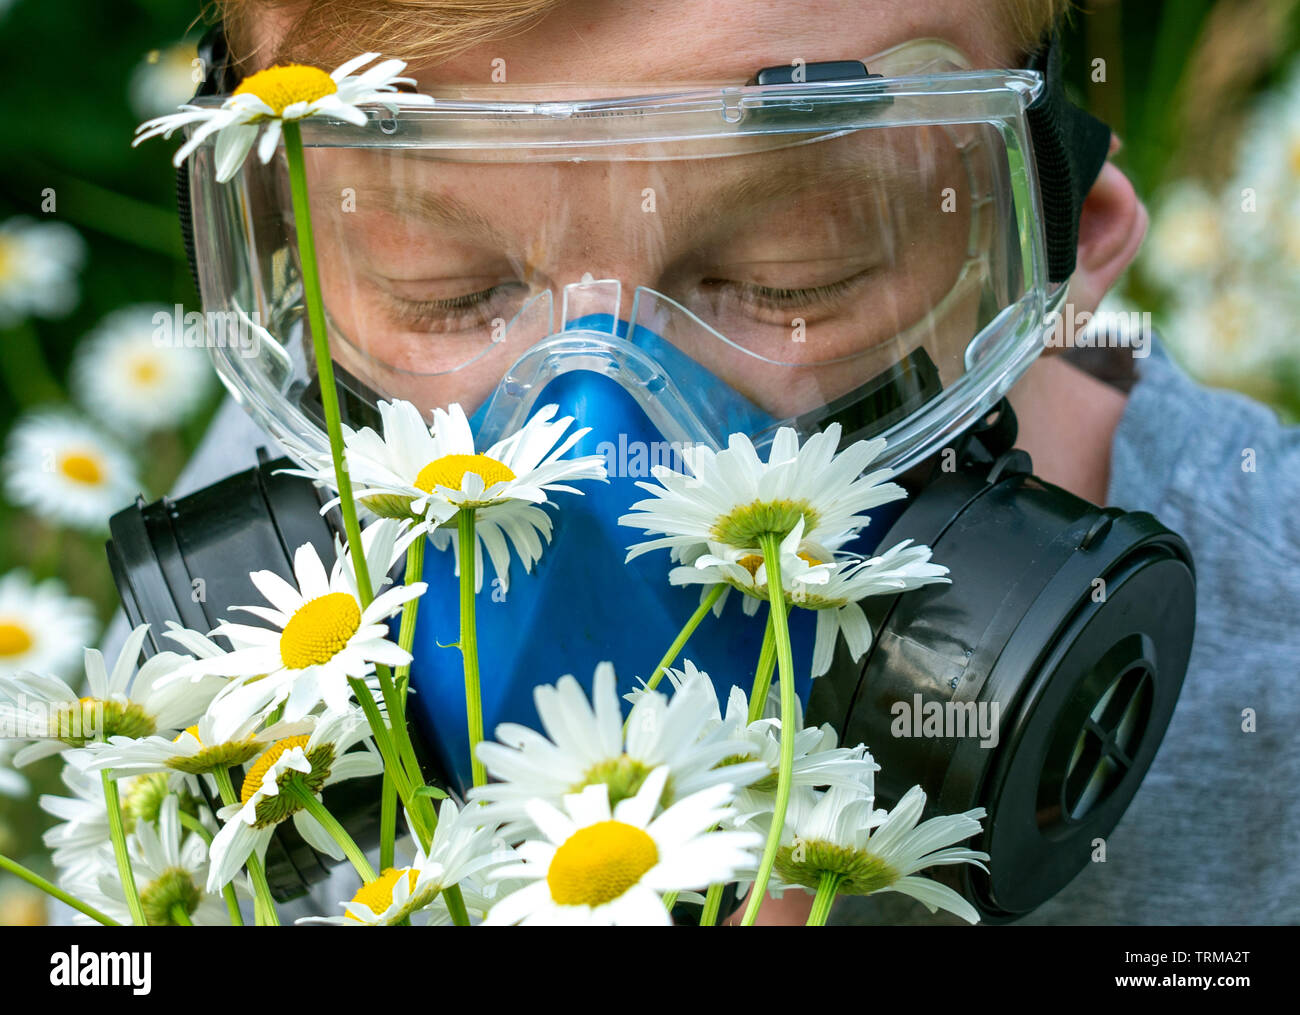 a person with allergies in a respirator and goggles sniffs chamomile in a meadow. - Stock Image